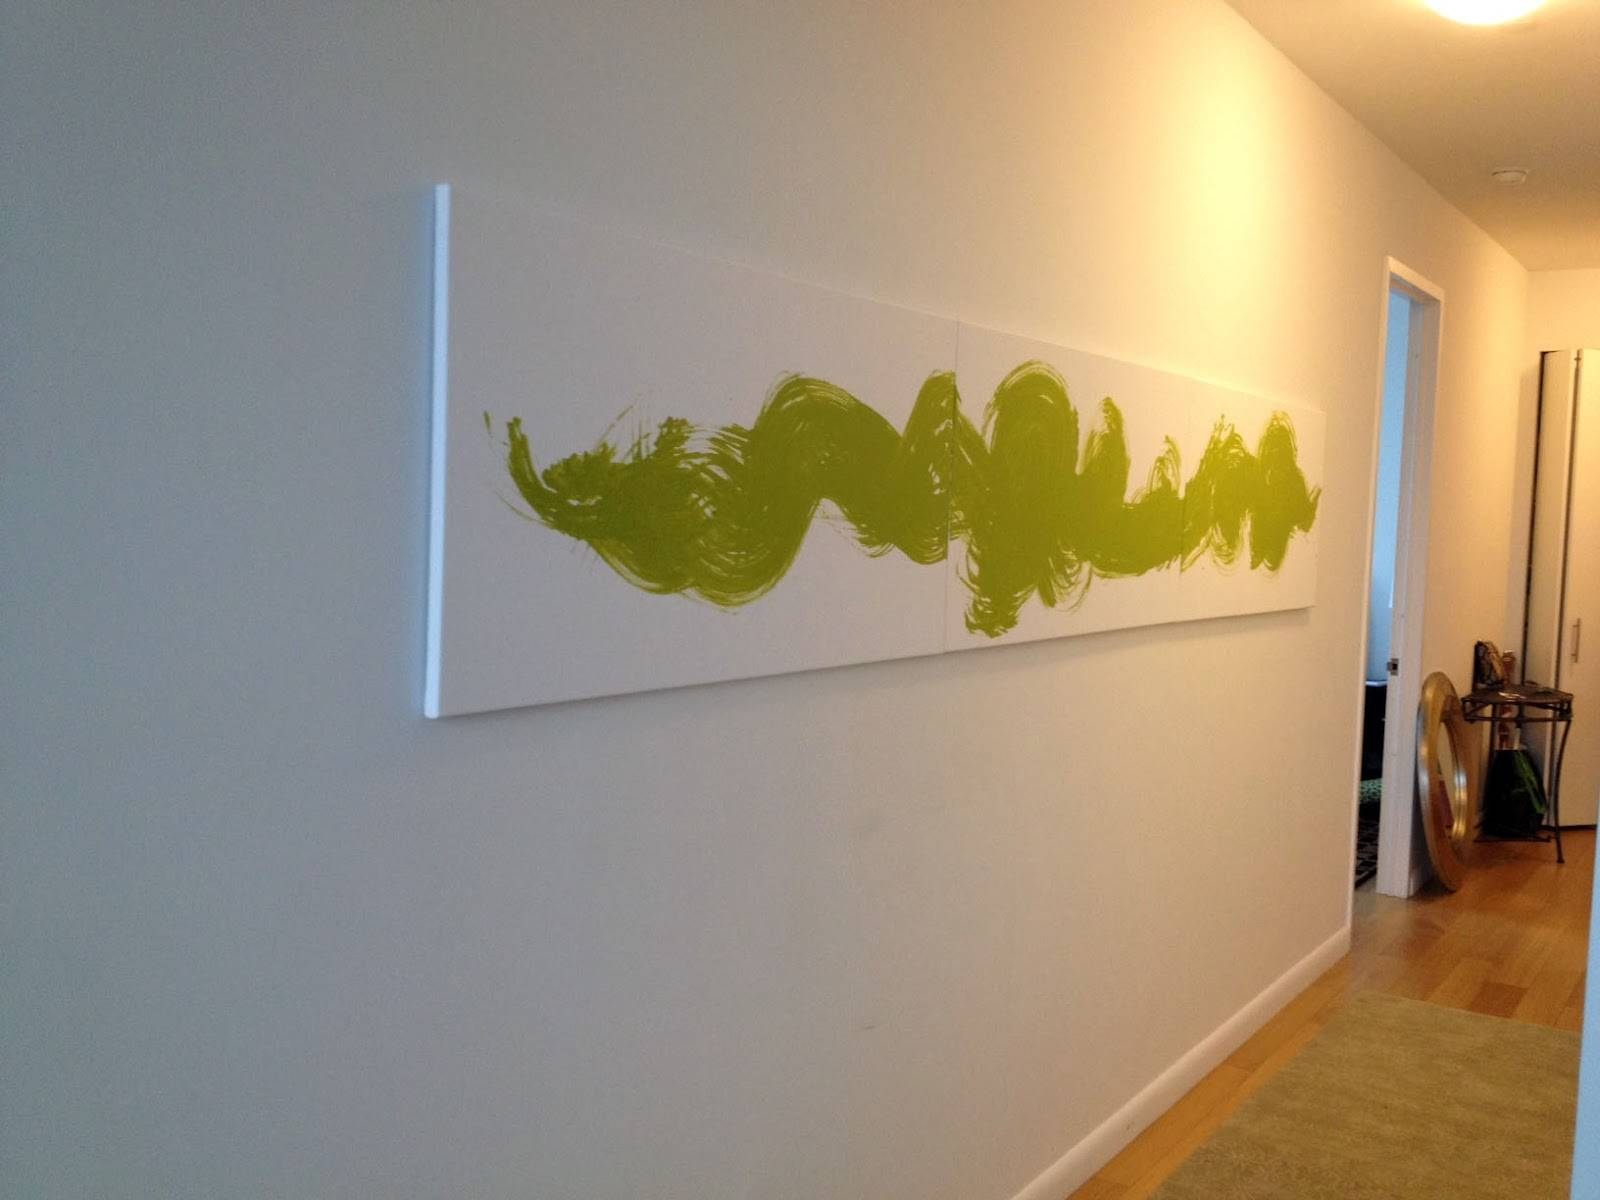 Wall Art Ideas Gallery And For Hallways Inspirations – Artenzo With Regard To 2017 Wall Art Ideas For Hallways (View 17 of 20)